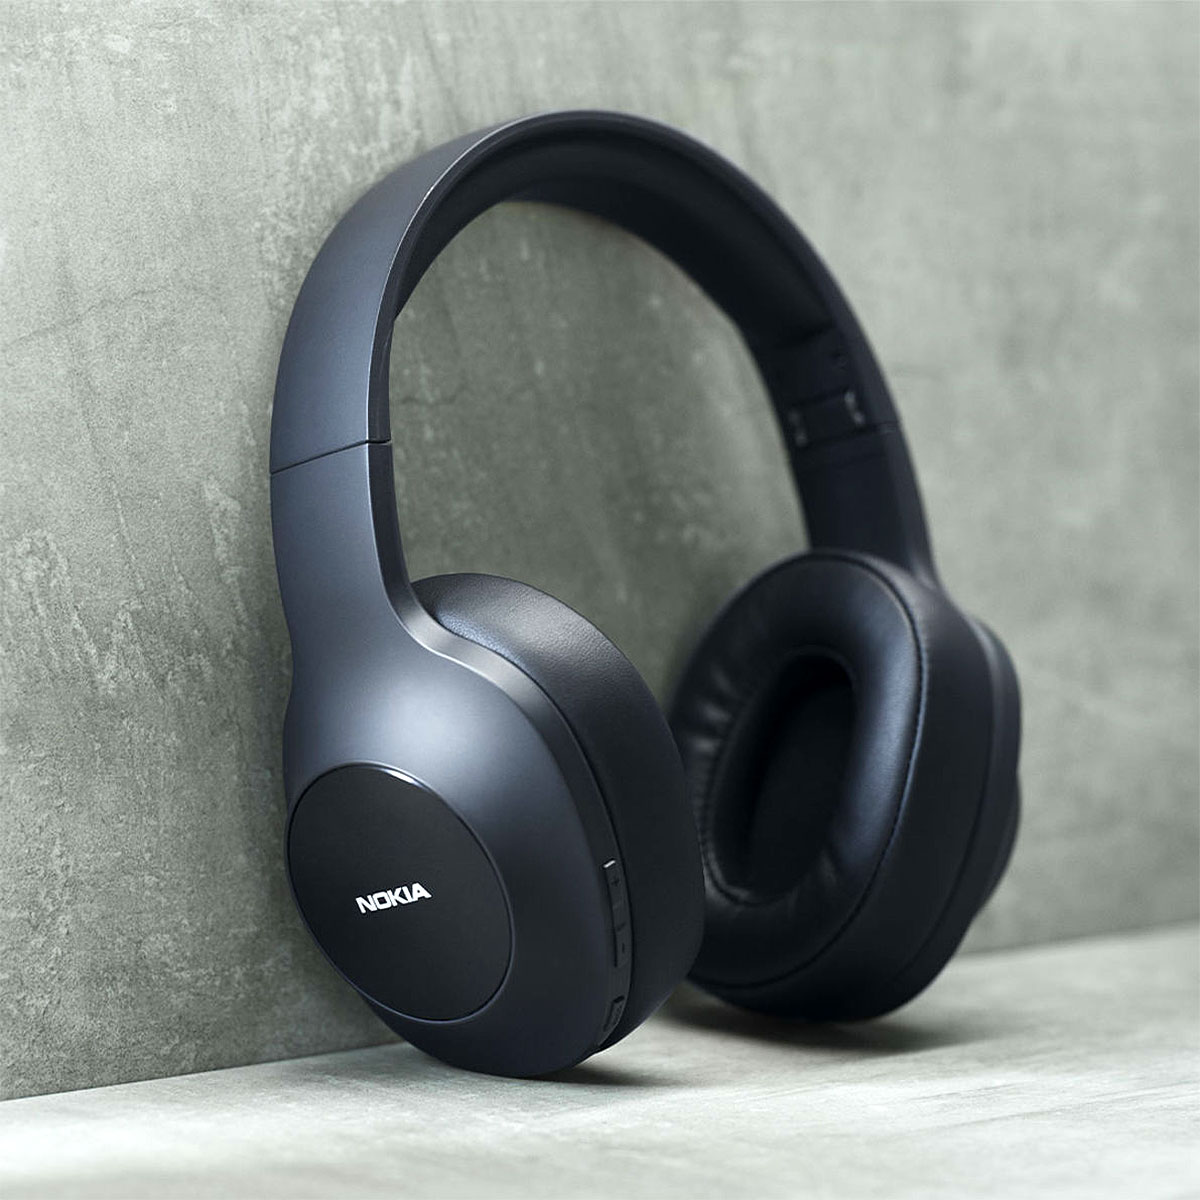 Nokia Essential Wireless Headphones